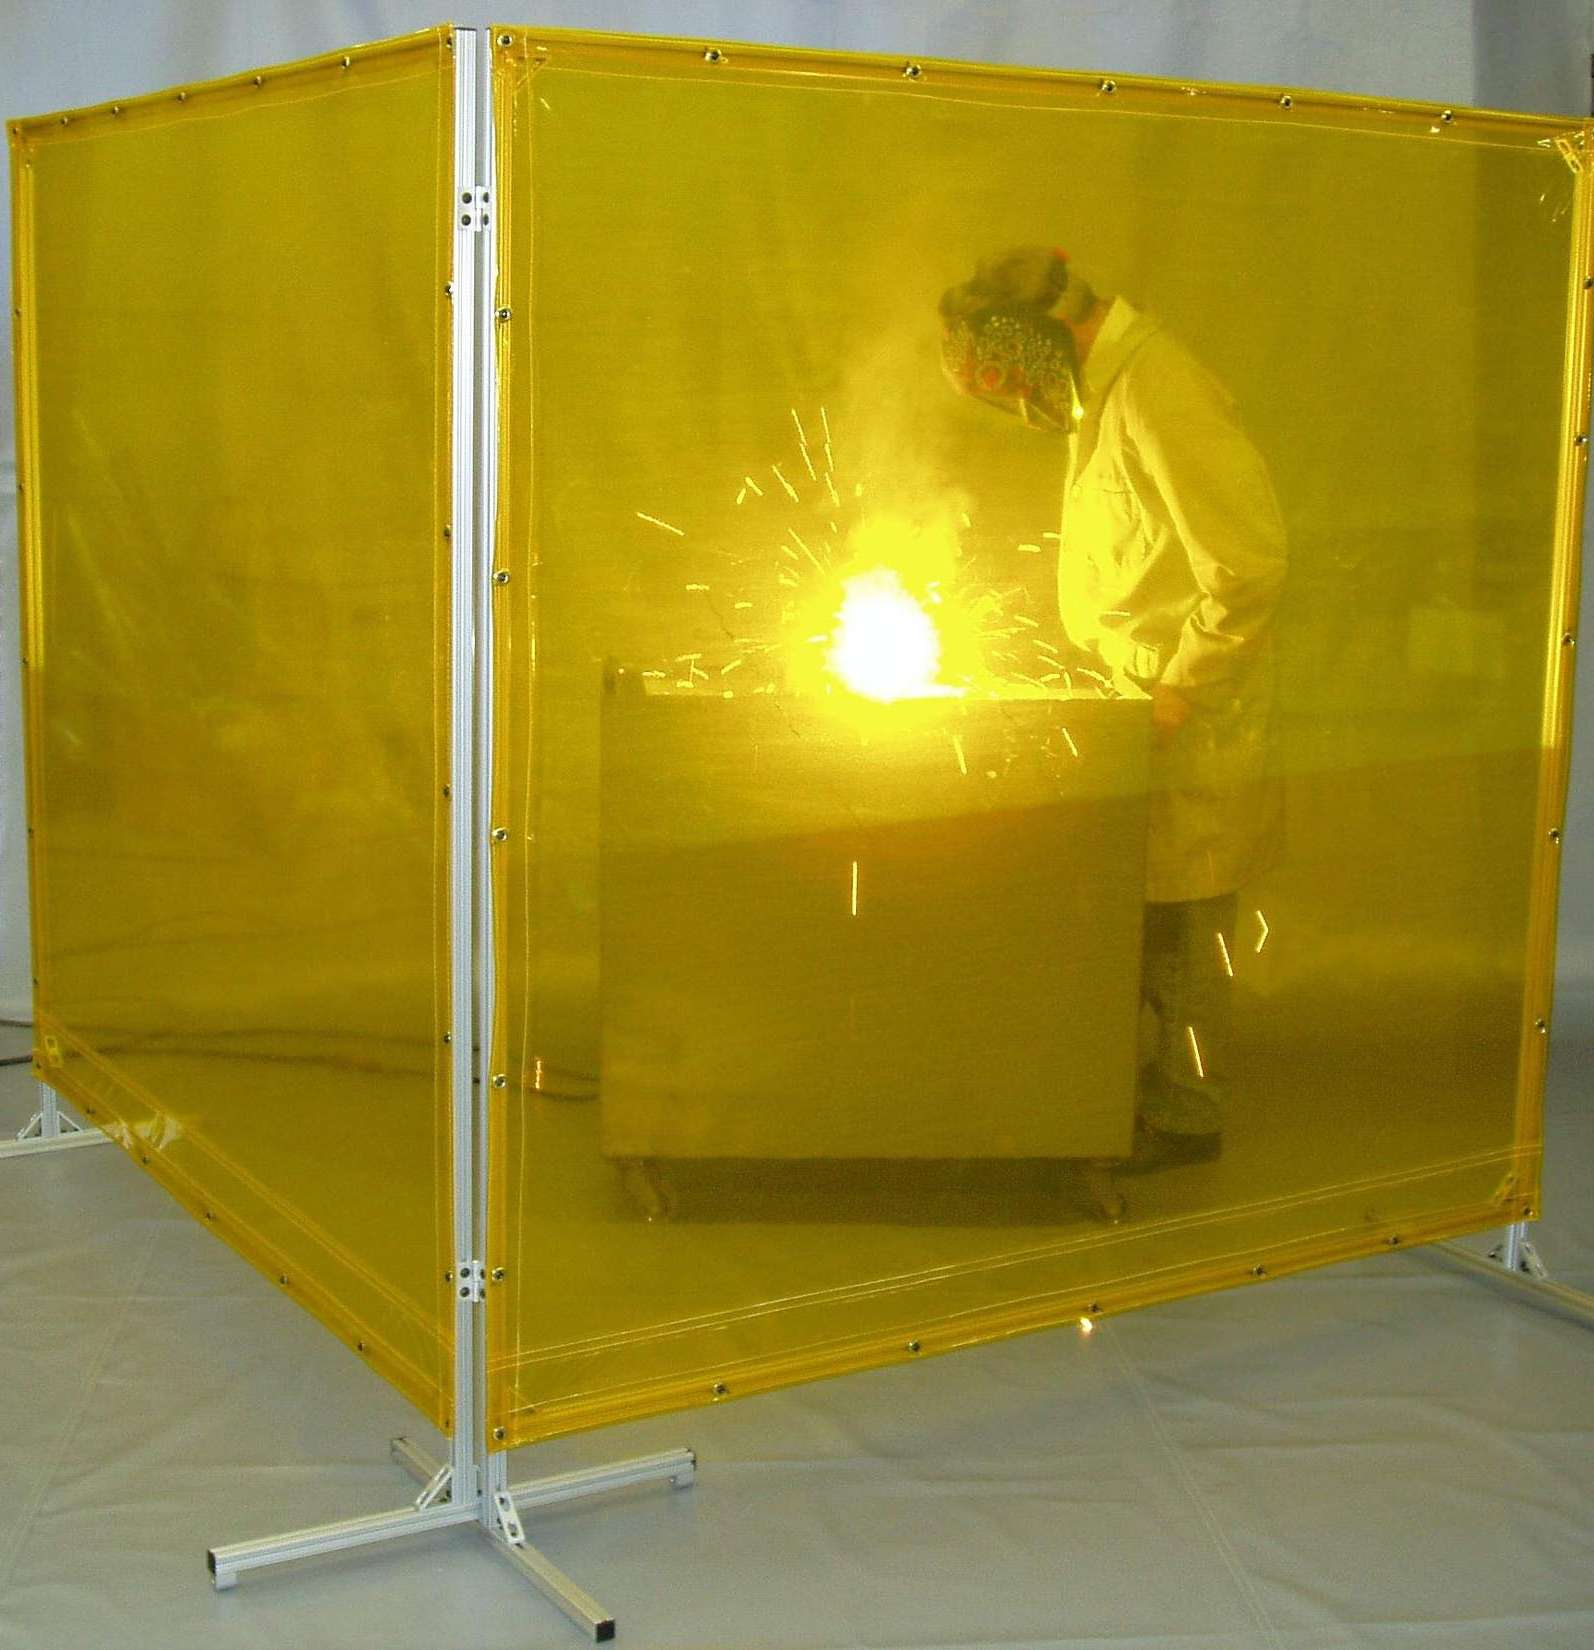 Screens Brings Portable Protection Where Welding Happens